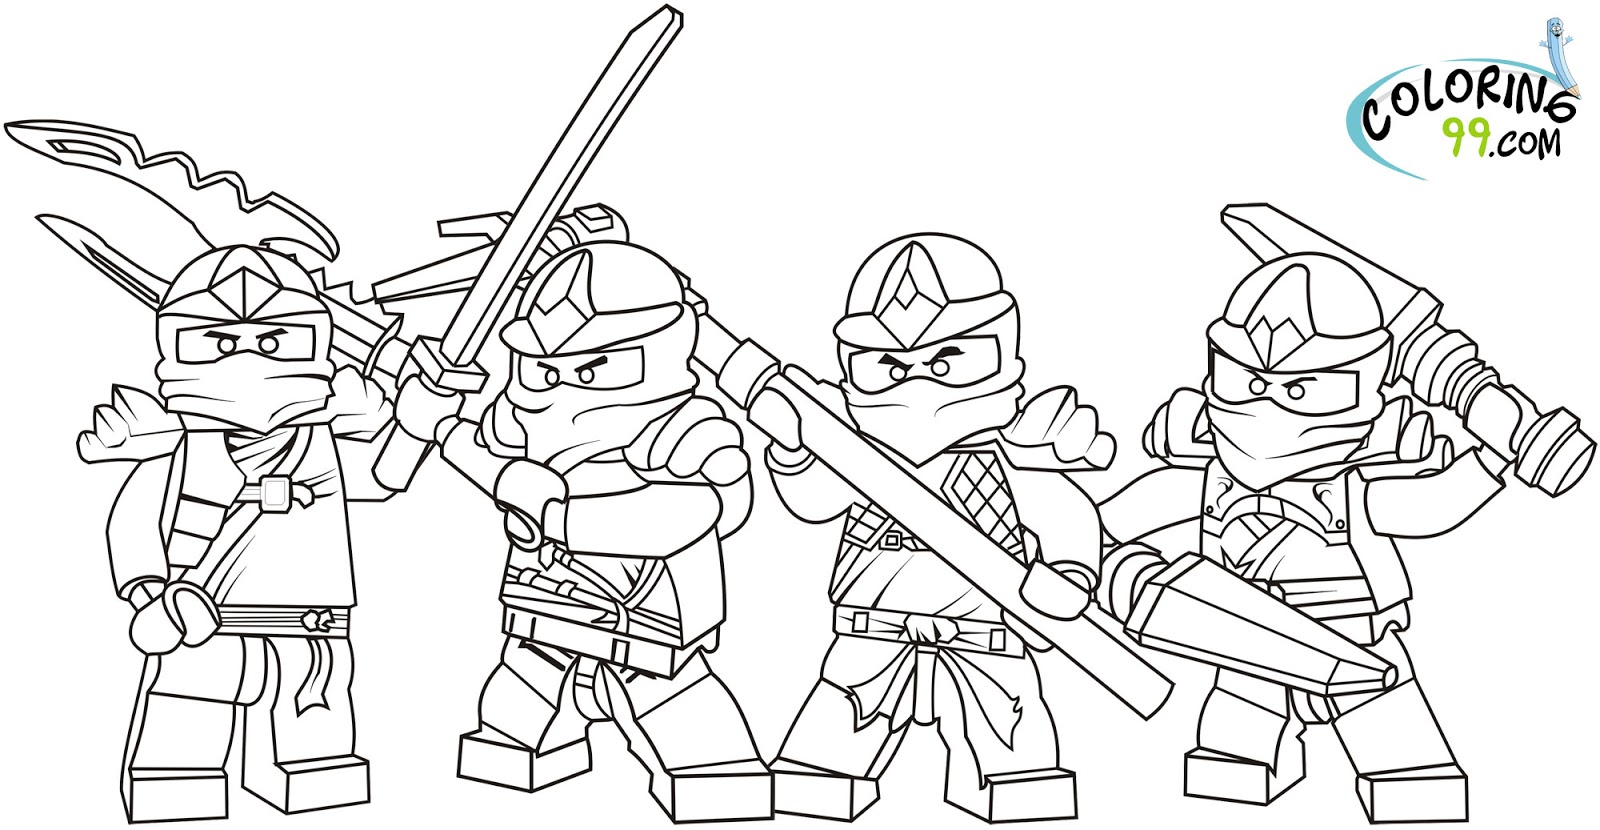 Lego Coloring Pages on Pinterest Coloring Pages, Lego